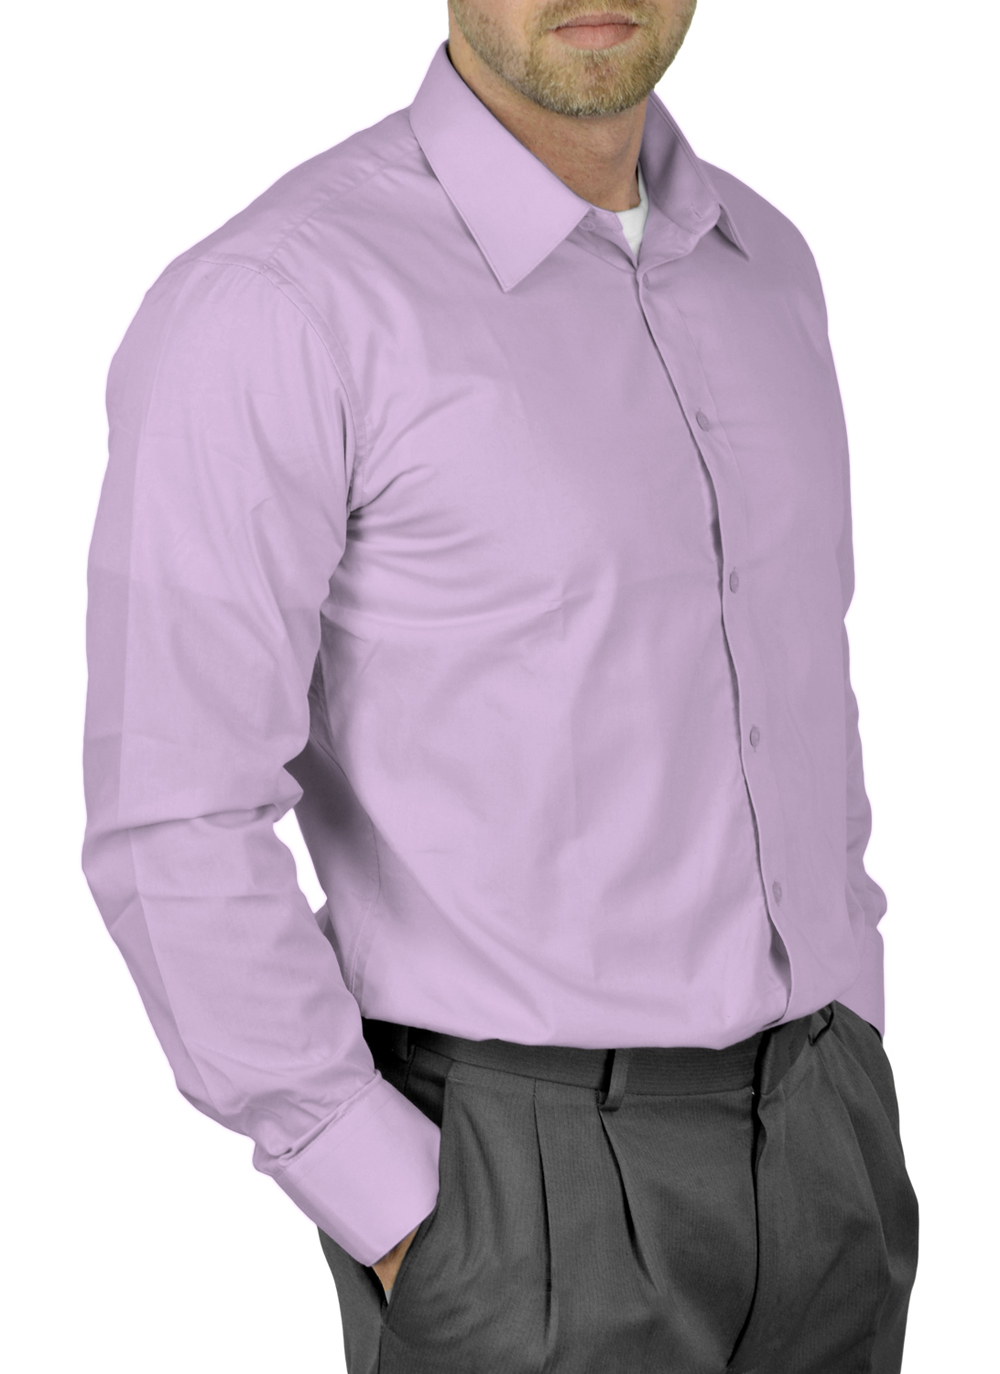 Mens Dress Shirt Slim and Regular Fit Office Casual French Cuff Moda Di Raza - Lavender 16.5